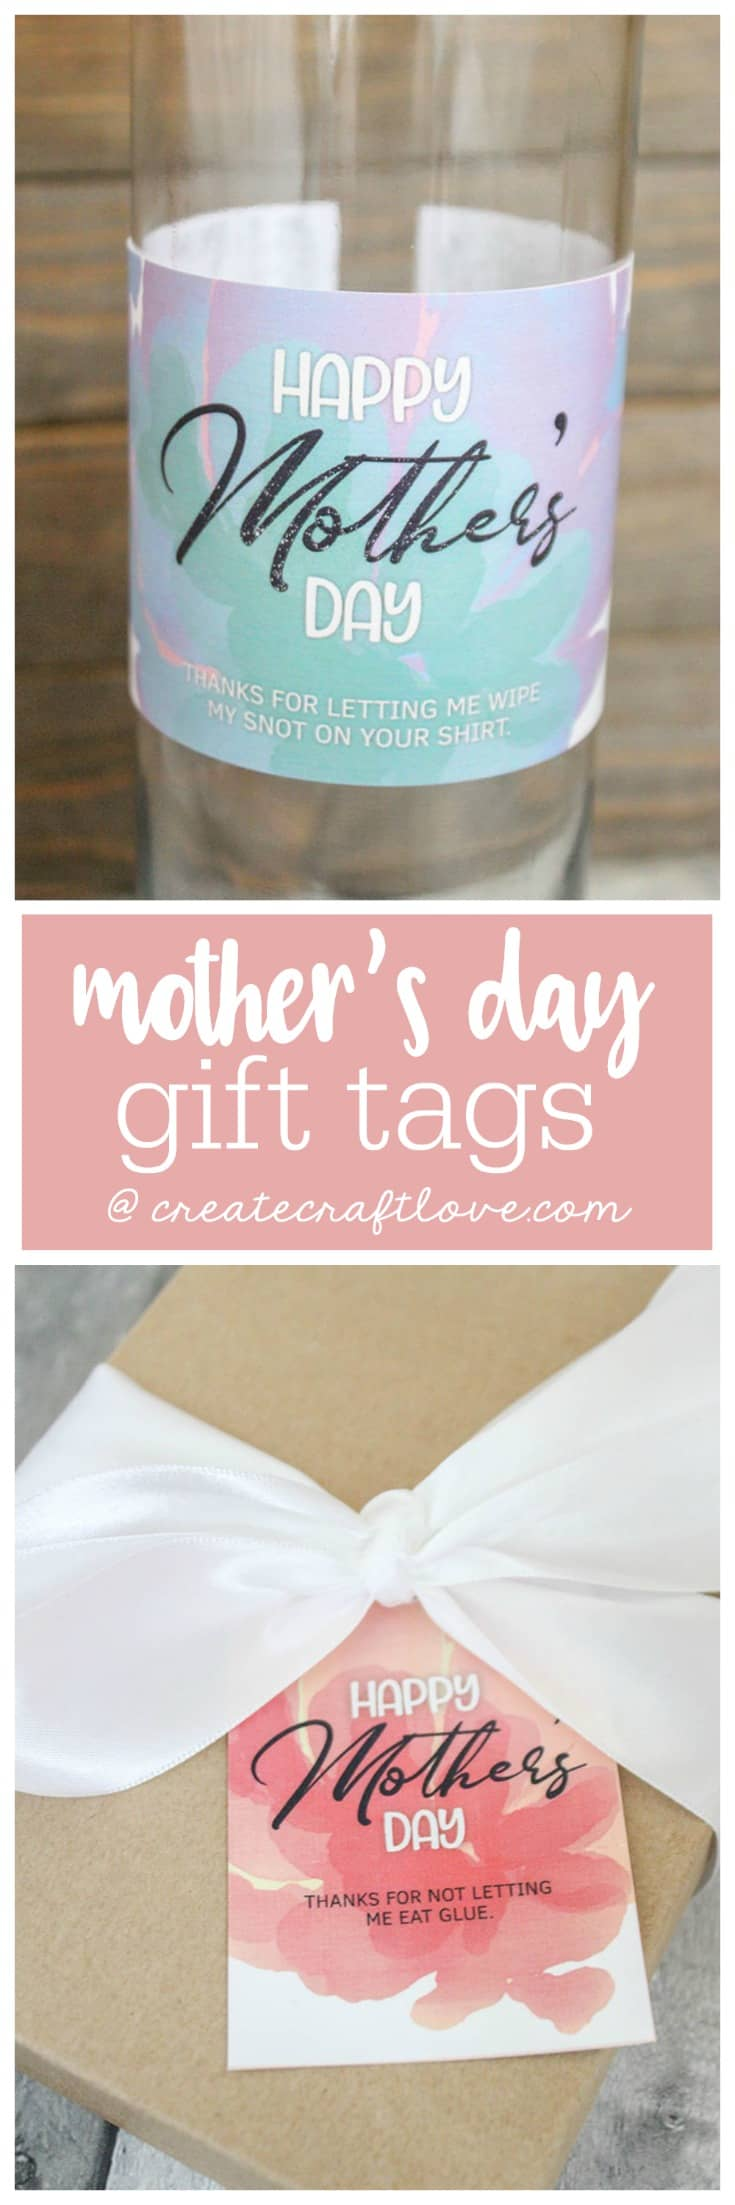 These Mother's Day Printable Gift Tags are hysterical and a great way to top off those gifts and packages for Mom!